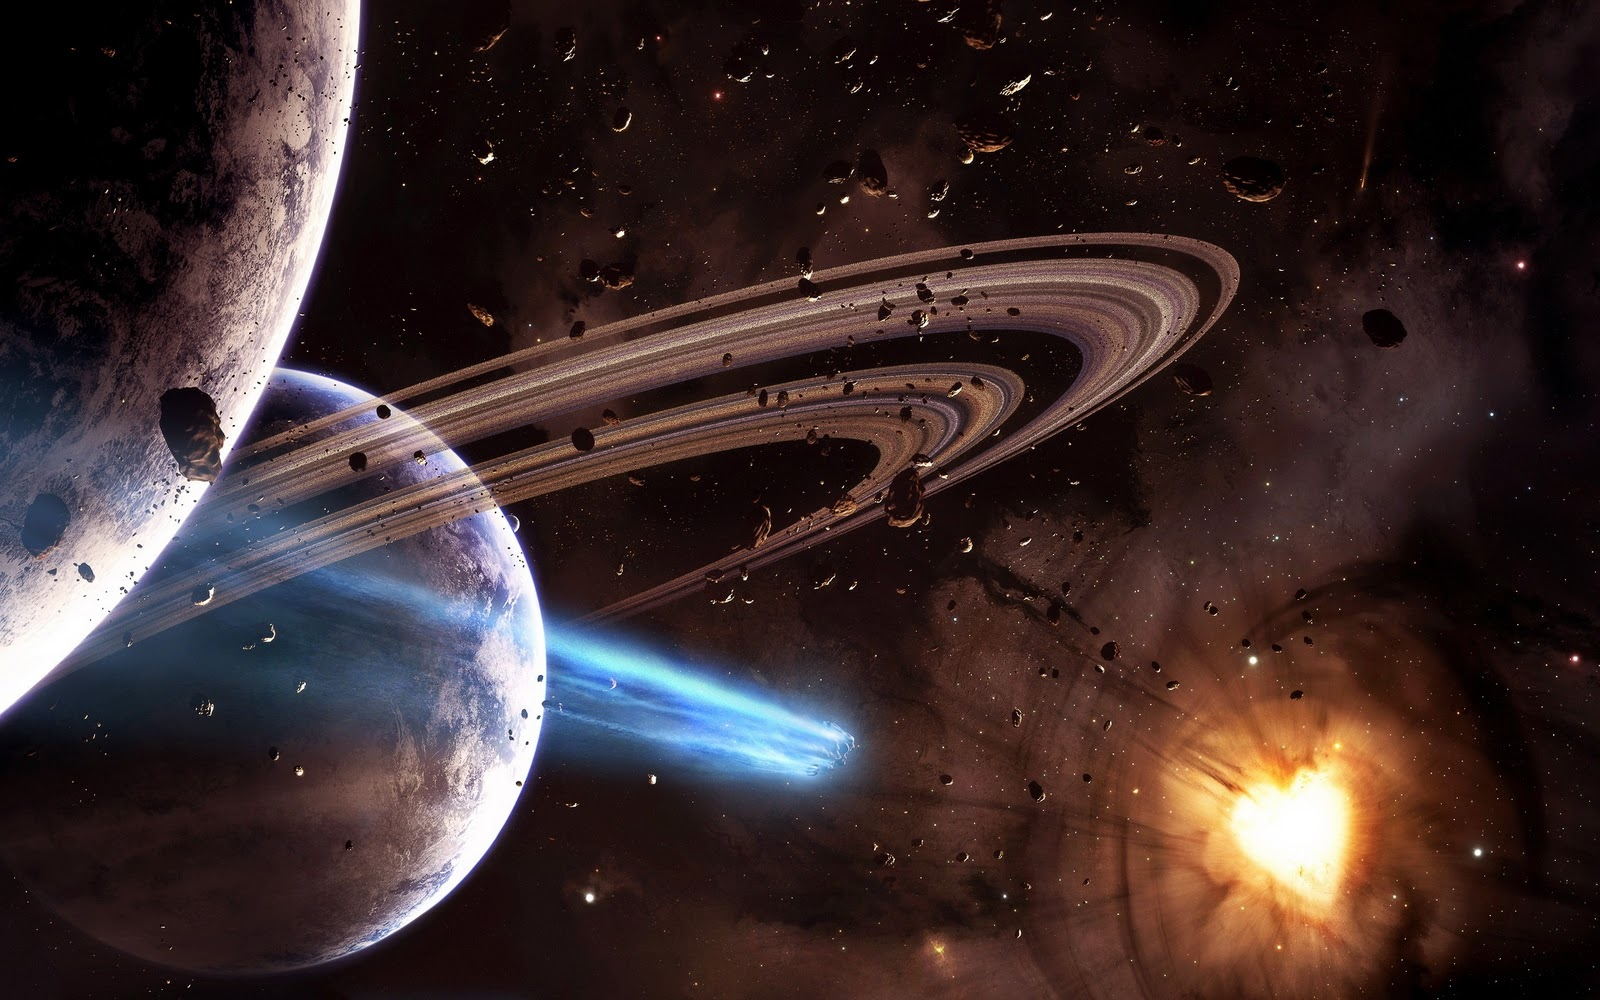 exploding planets wallpapersfor laptops - photo #35